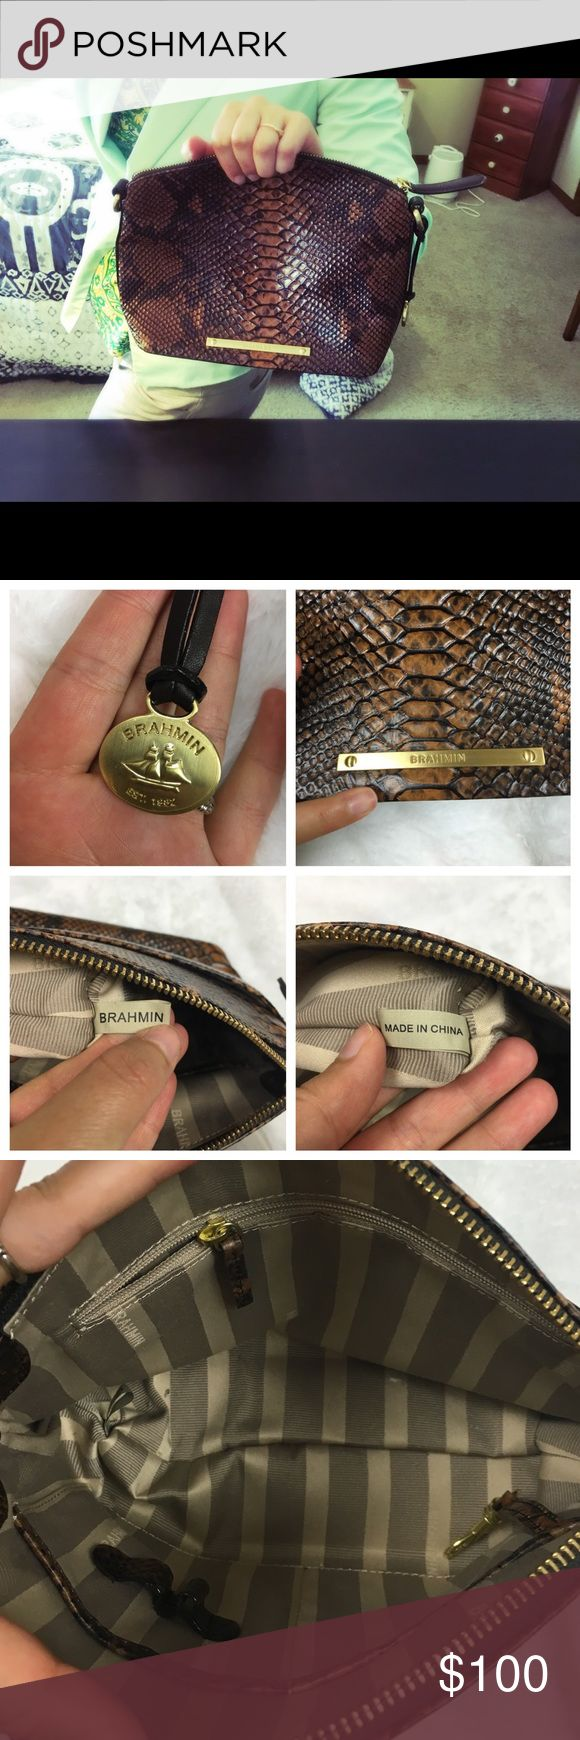 EUC Authentic Brahmin Classic Brown Clutch / Bag Literally looks almost brand new and so classic and chic. Brahmin brand. There is very light wear on inside and bottom but barely noticeable. Plastic covering still on outside charm. Has hooks for straps but no strap is included. Perfect for back to school. 10aug16bbko Brahmin Bags